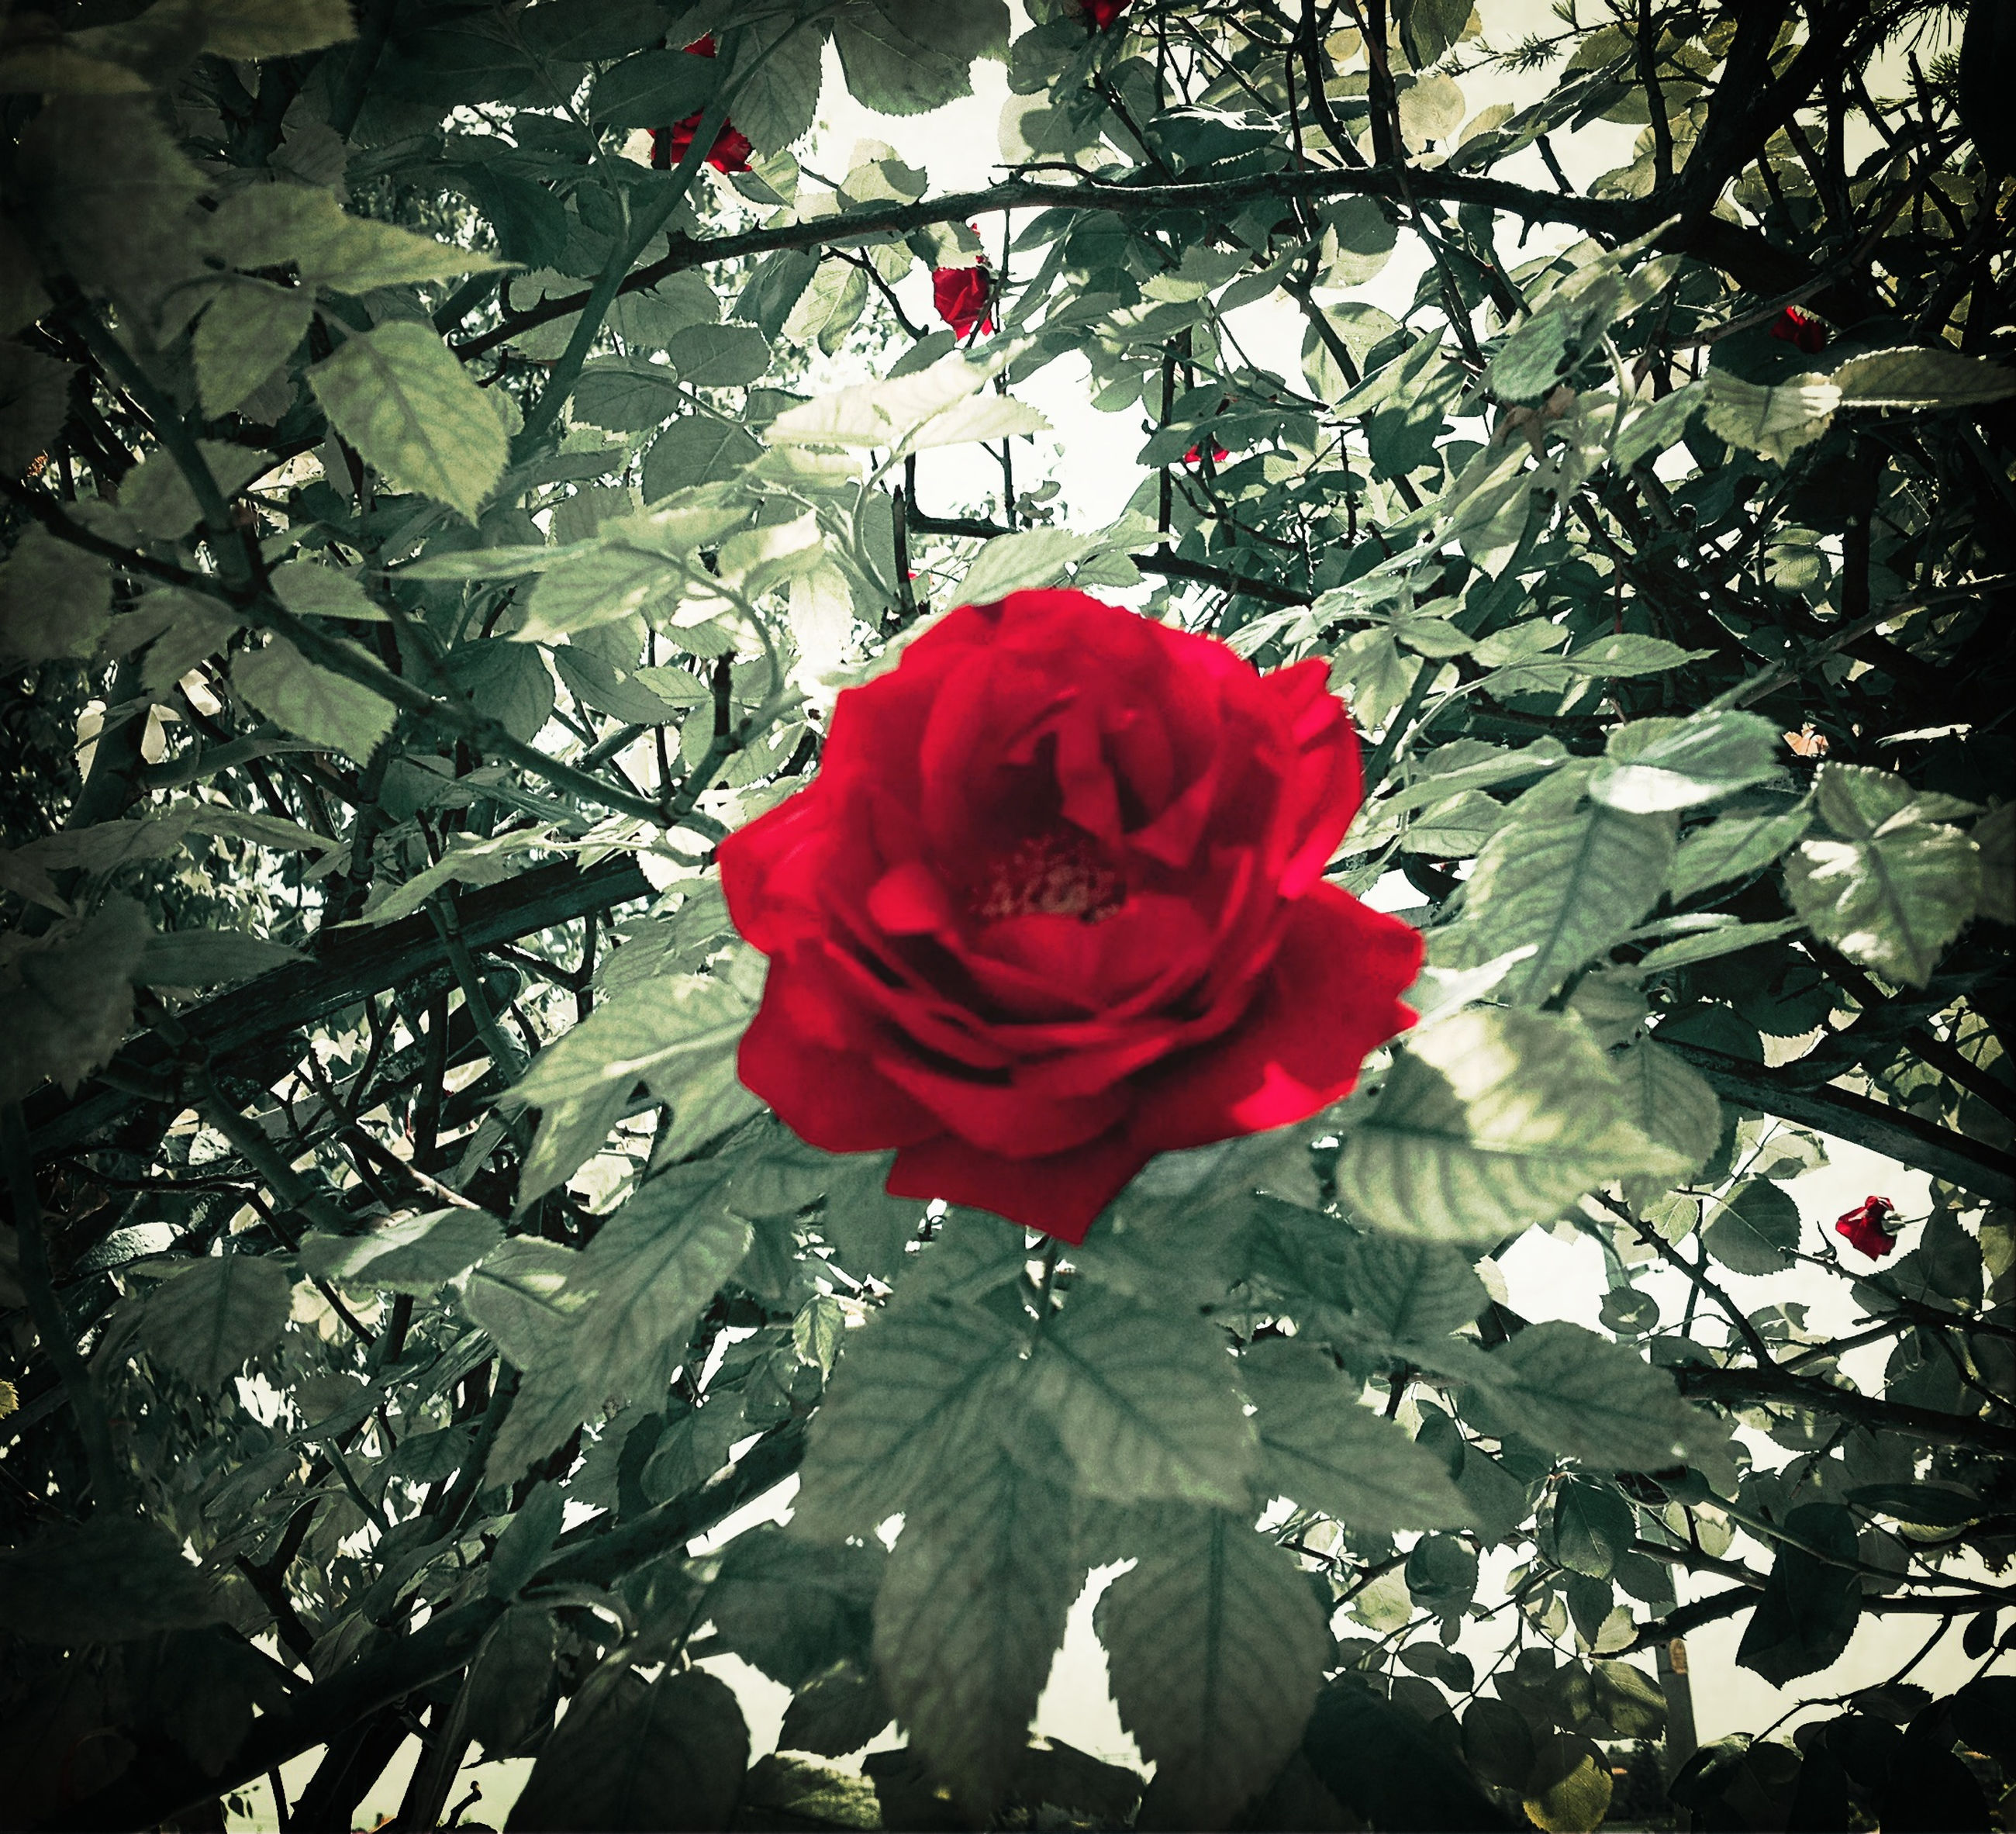 flower, petal, rose - flower, flower head, red, fragility, freshness, beauty in nature, leaf, growth, blooming, nature, close-up, rose, plant, in bloom, single flower, blossom, pink color, high angle view